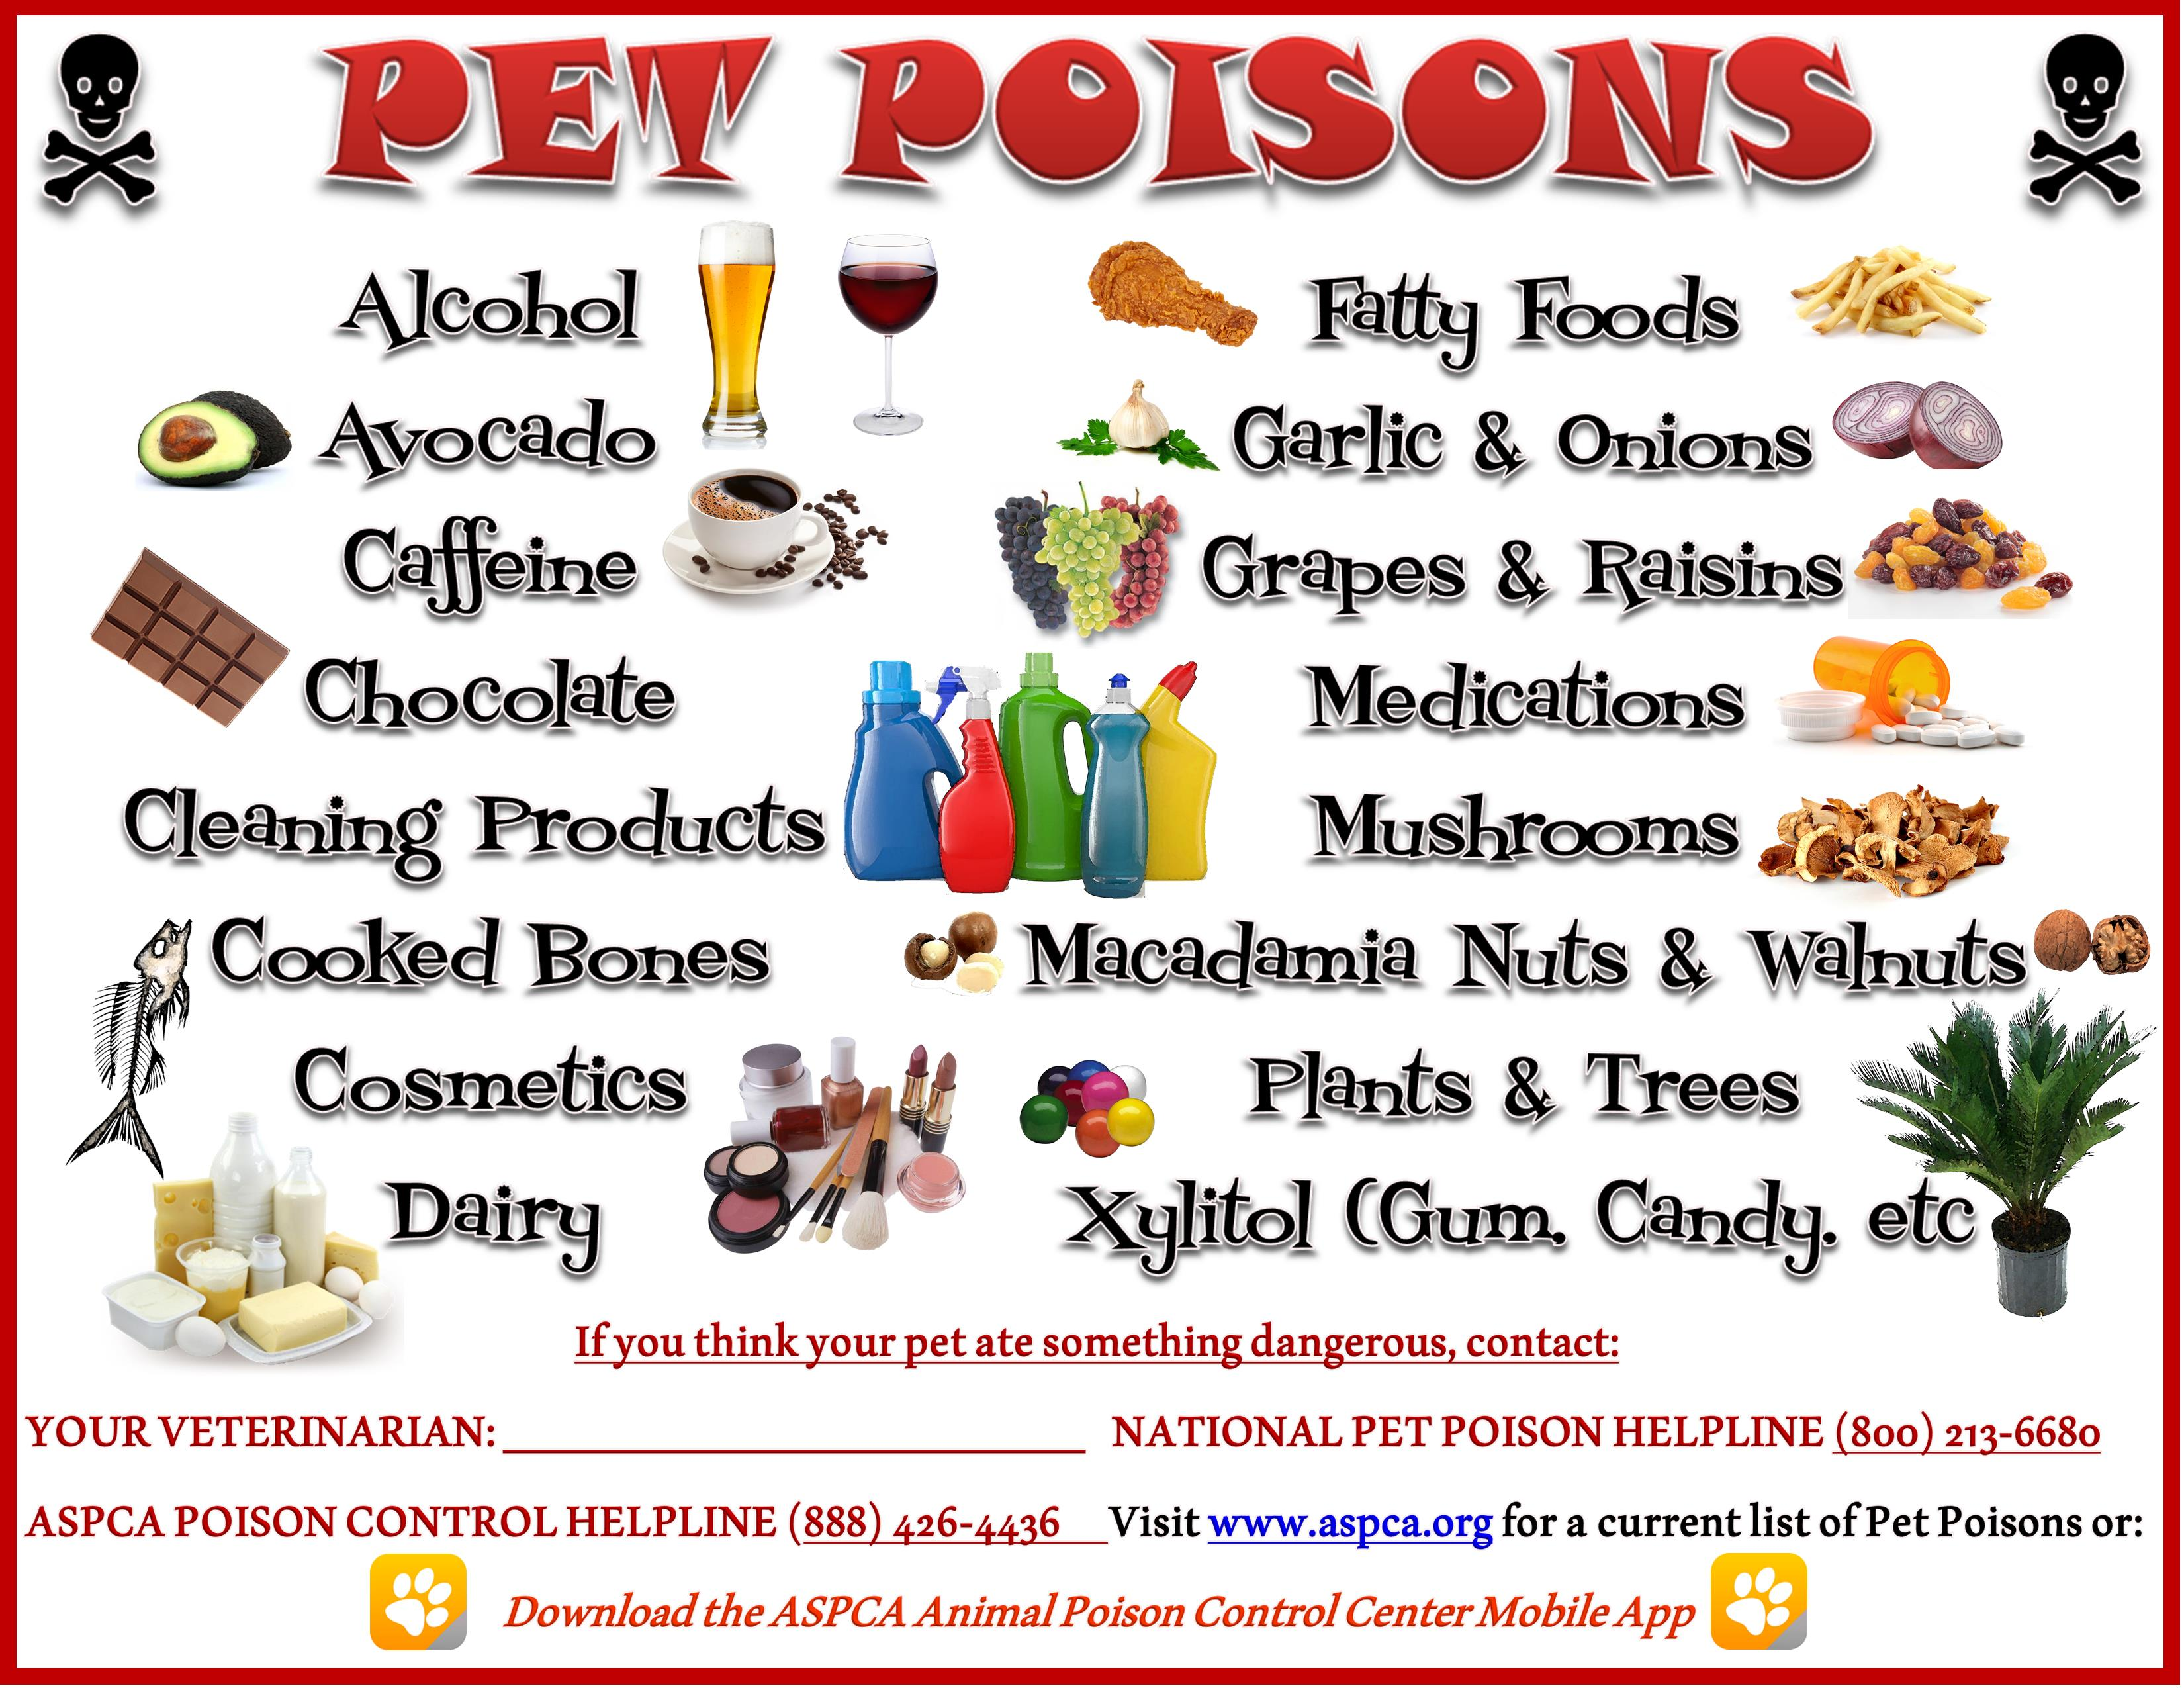 pet-poisons---updated-feb-28th-2015_16650084616_o